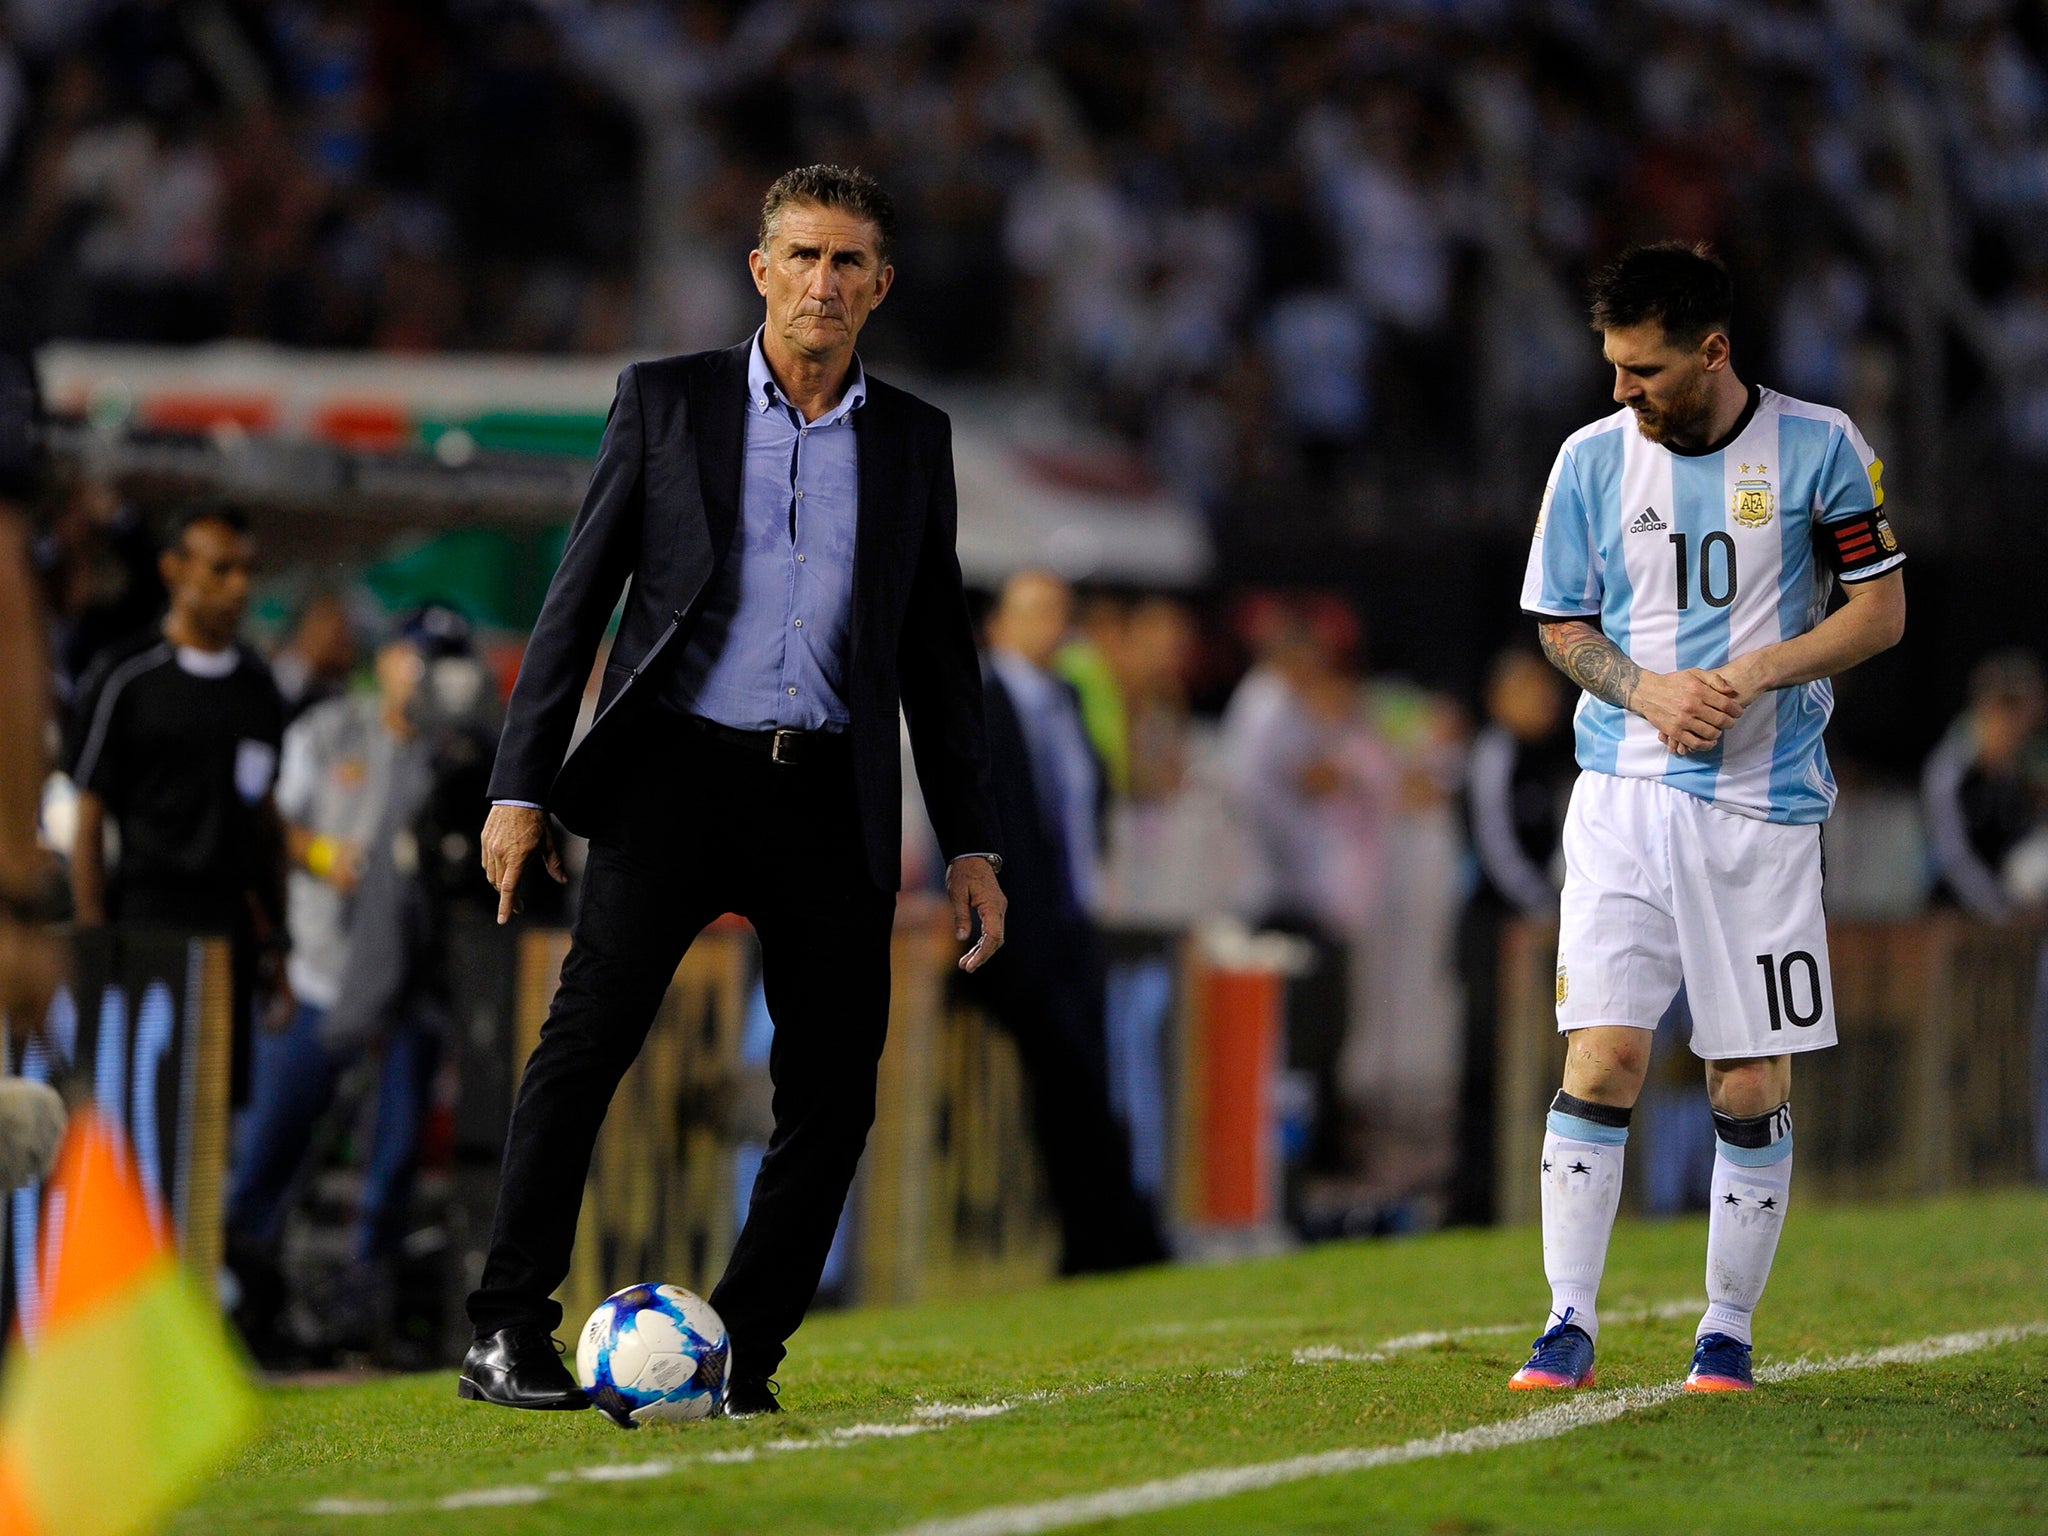 Argentina coach Edgardo Bauza to be sacked as World Cup qualification hangs in the balance